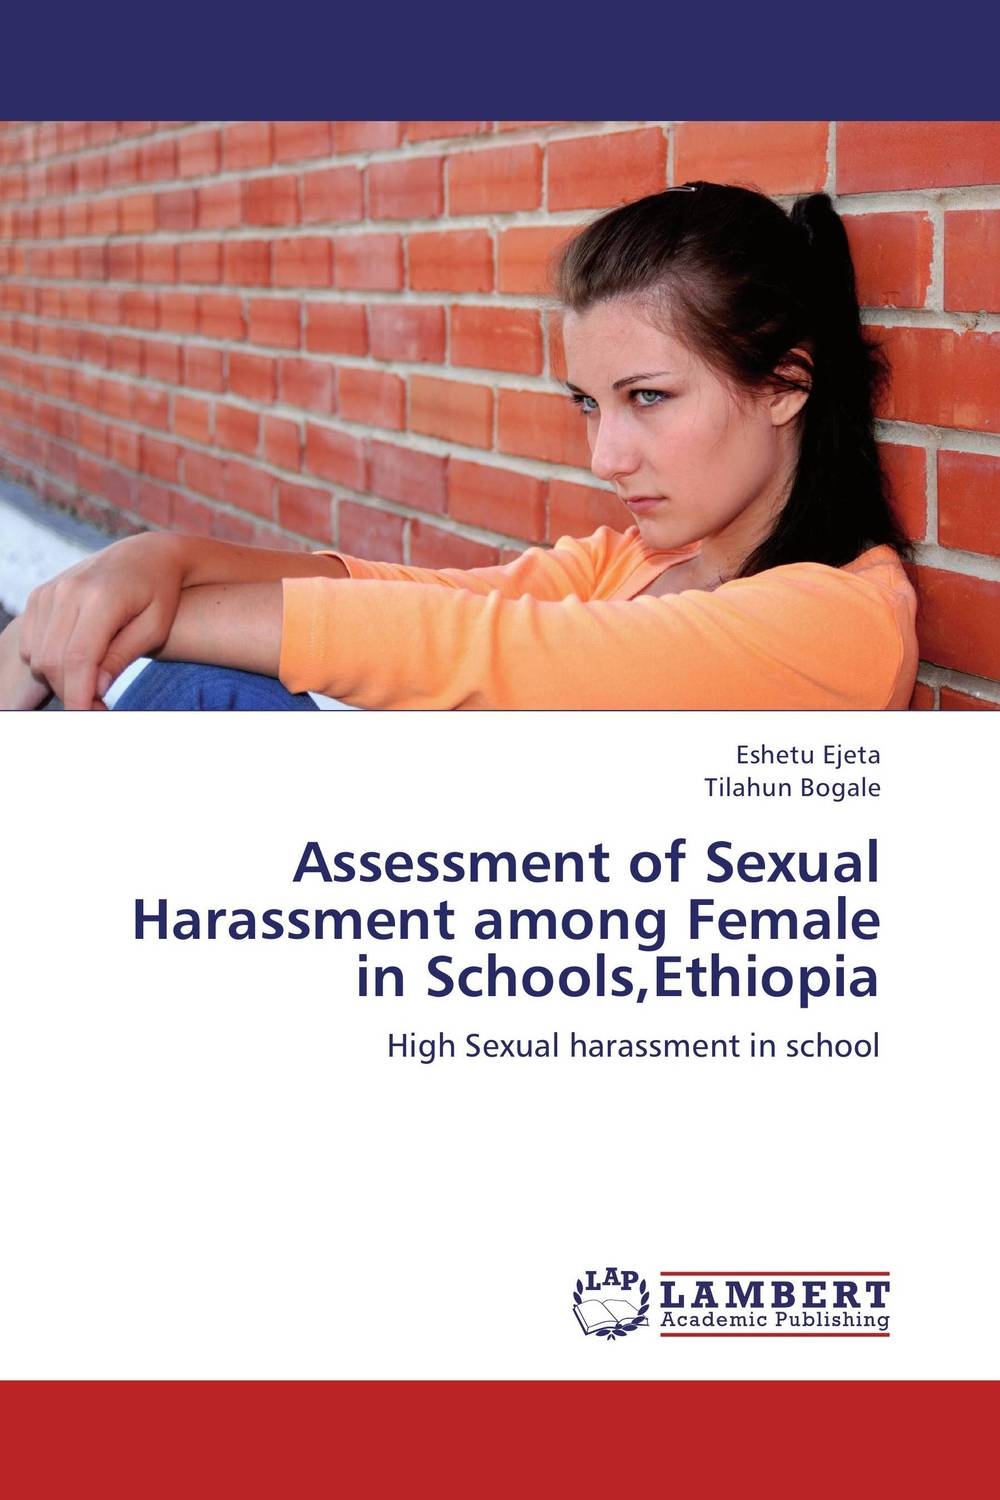 Assessment of Sexual Harassment among Female in Schools,Ethiopia assessment of sexual harassment among female in schools ethiopia